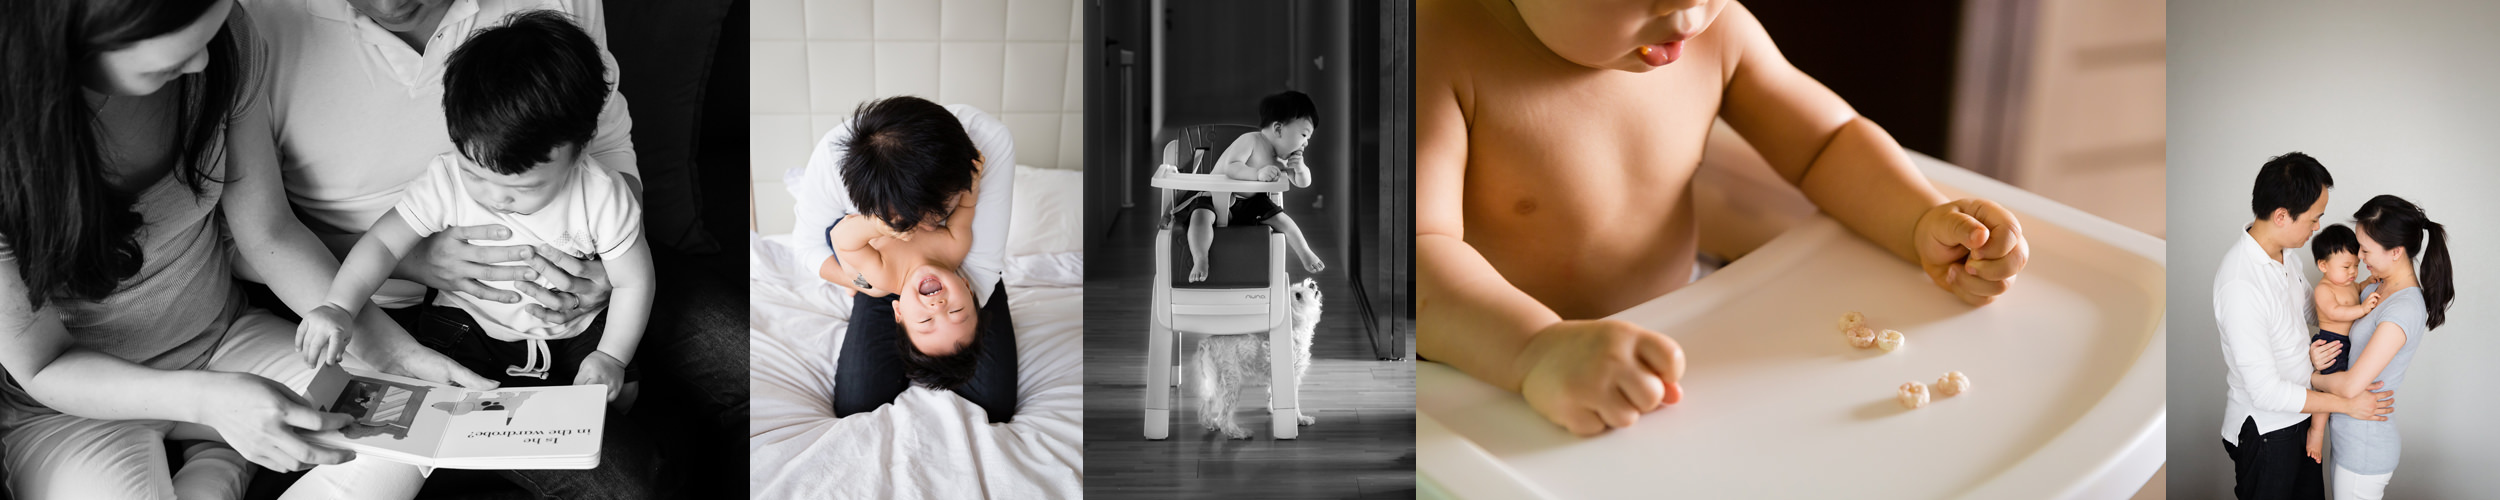 In_home_family_lifestyle_photo_session_collage_by_hunnicutt_photography.jpg